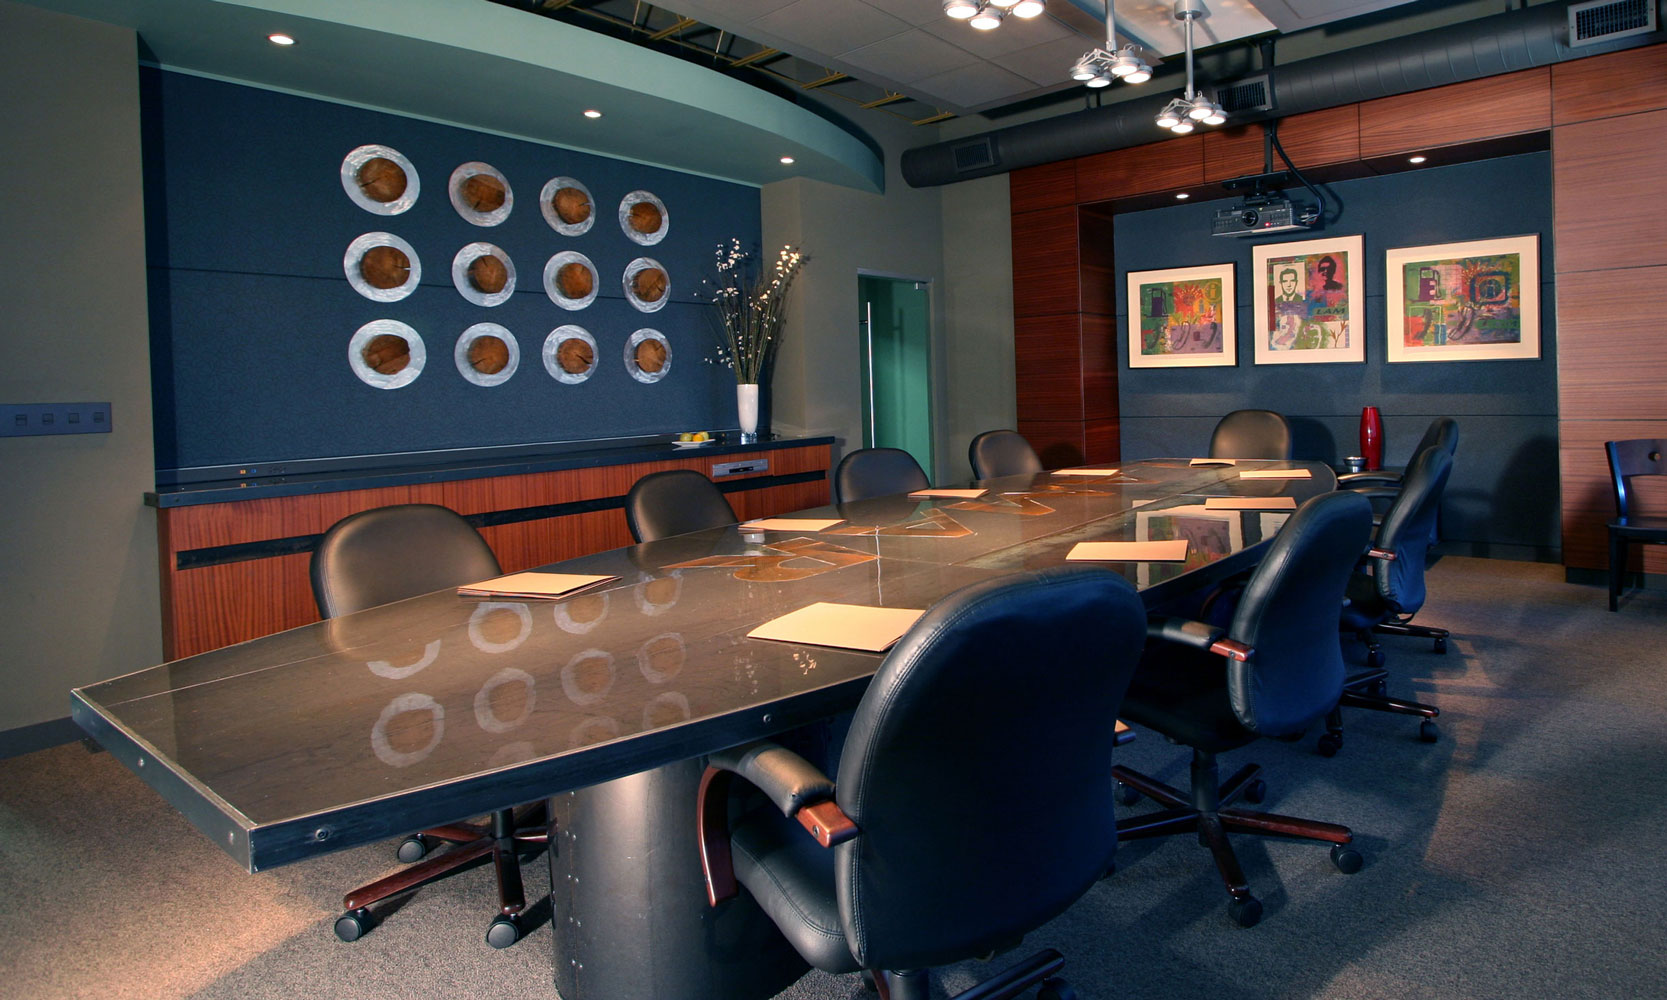 Board room with dark blue and wood accents